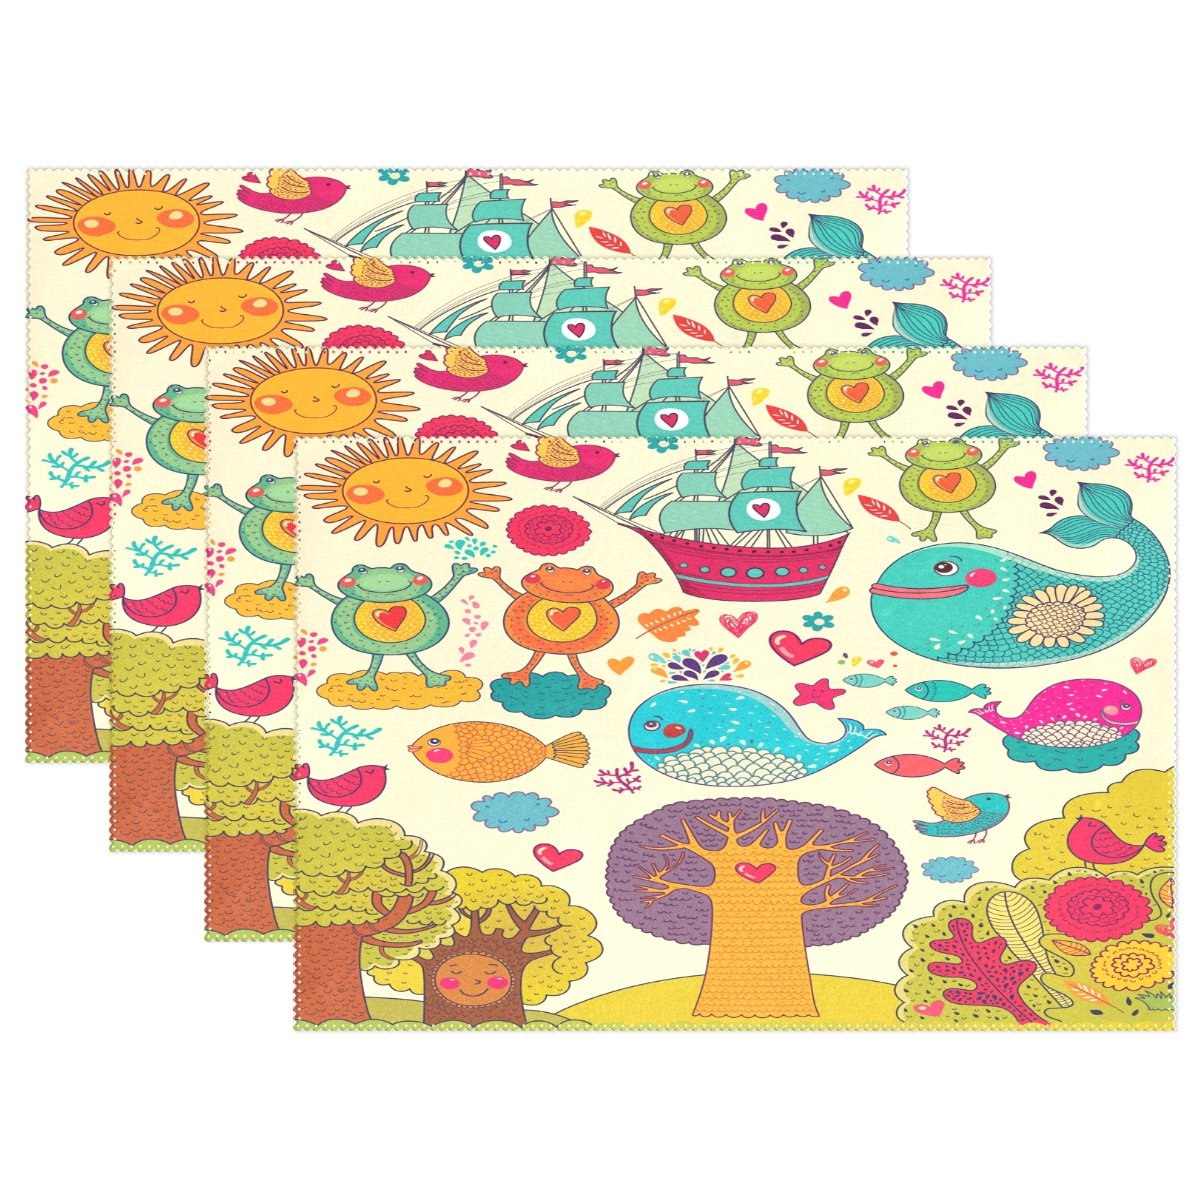 Animals Fishes Tree Sunny Day Place Mat Table Mat for Kitchen Dining Room Heat Insulation Anti-skid Home Decor by MOCK ST Place Mat 12 x 18 inches Set of 6